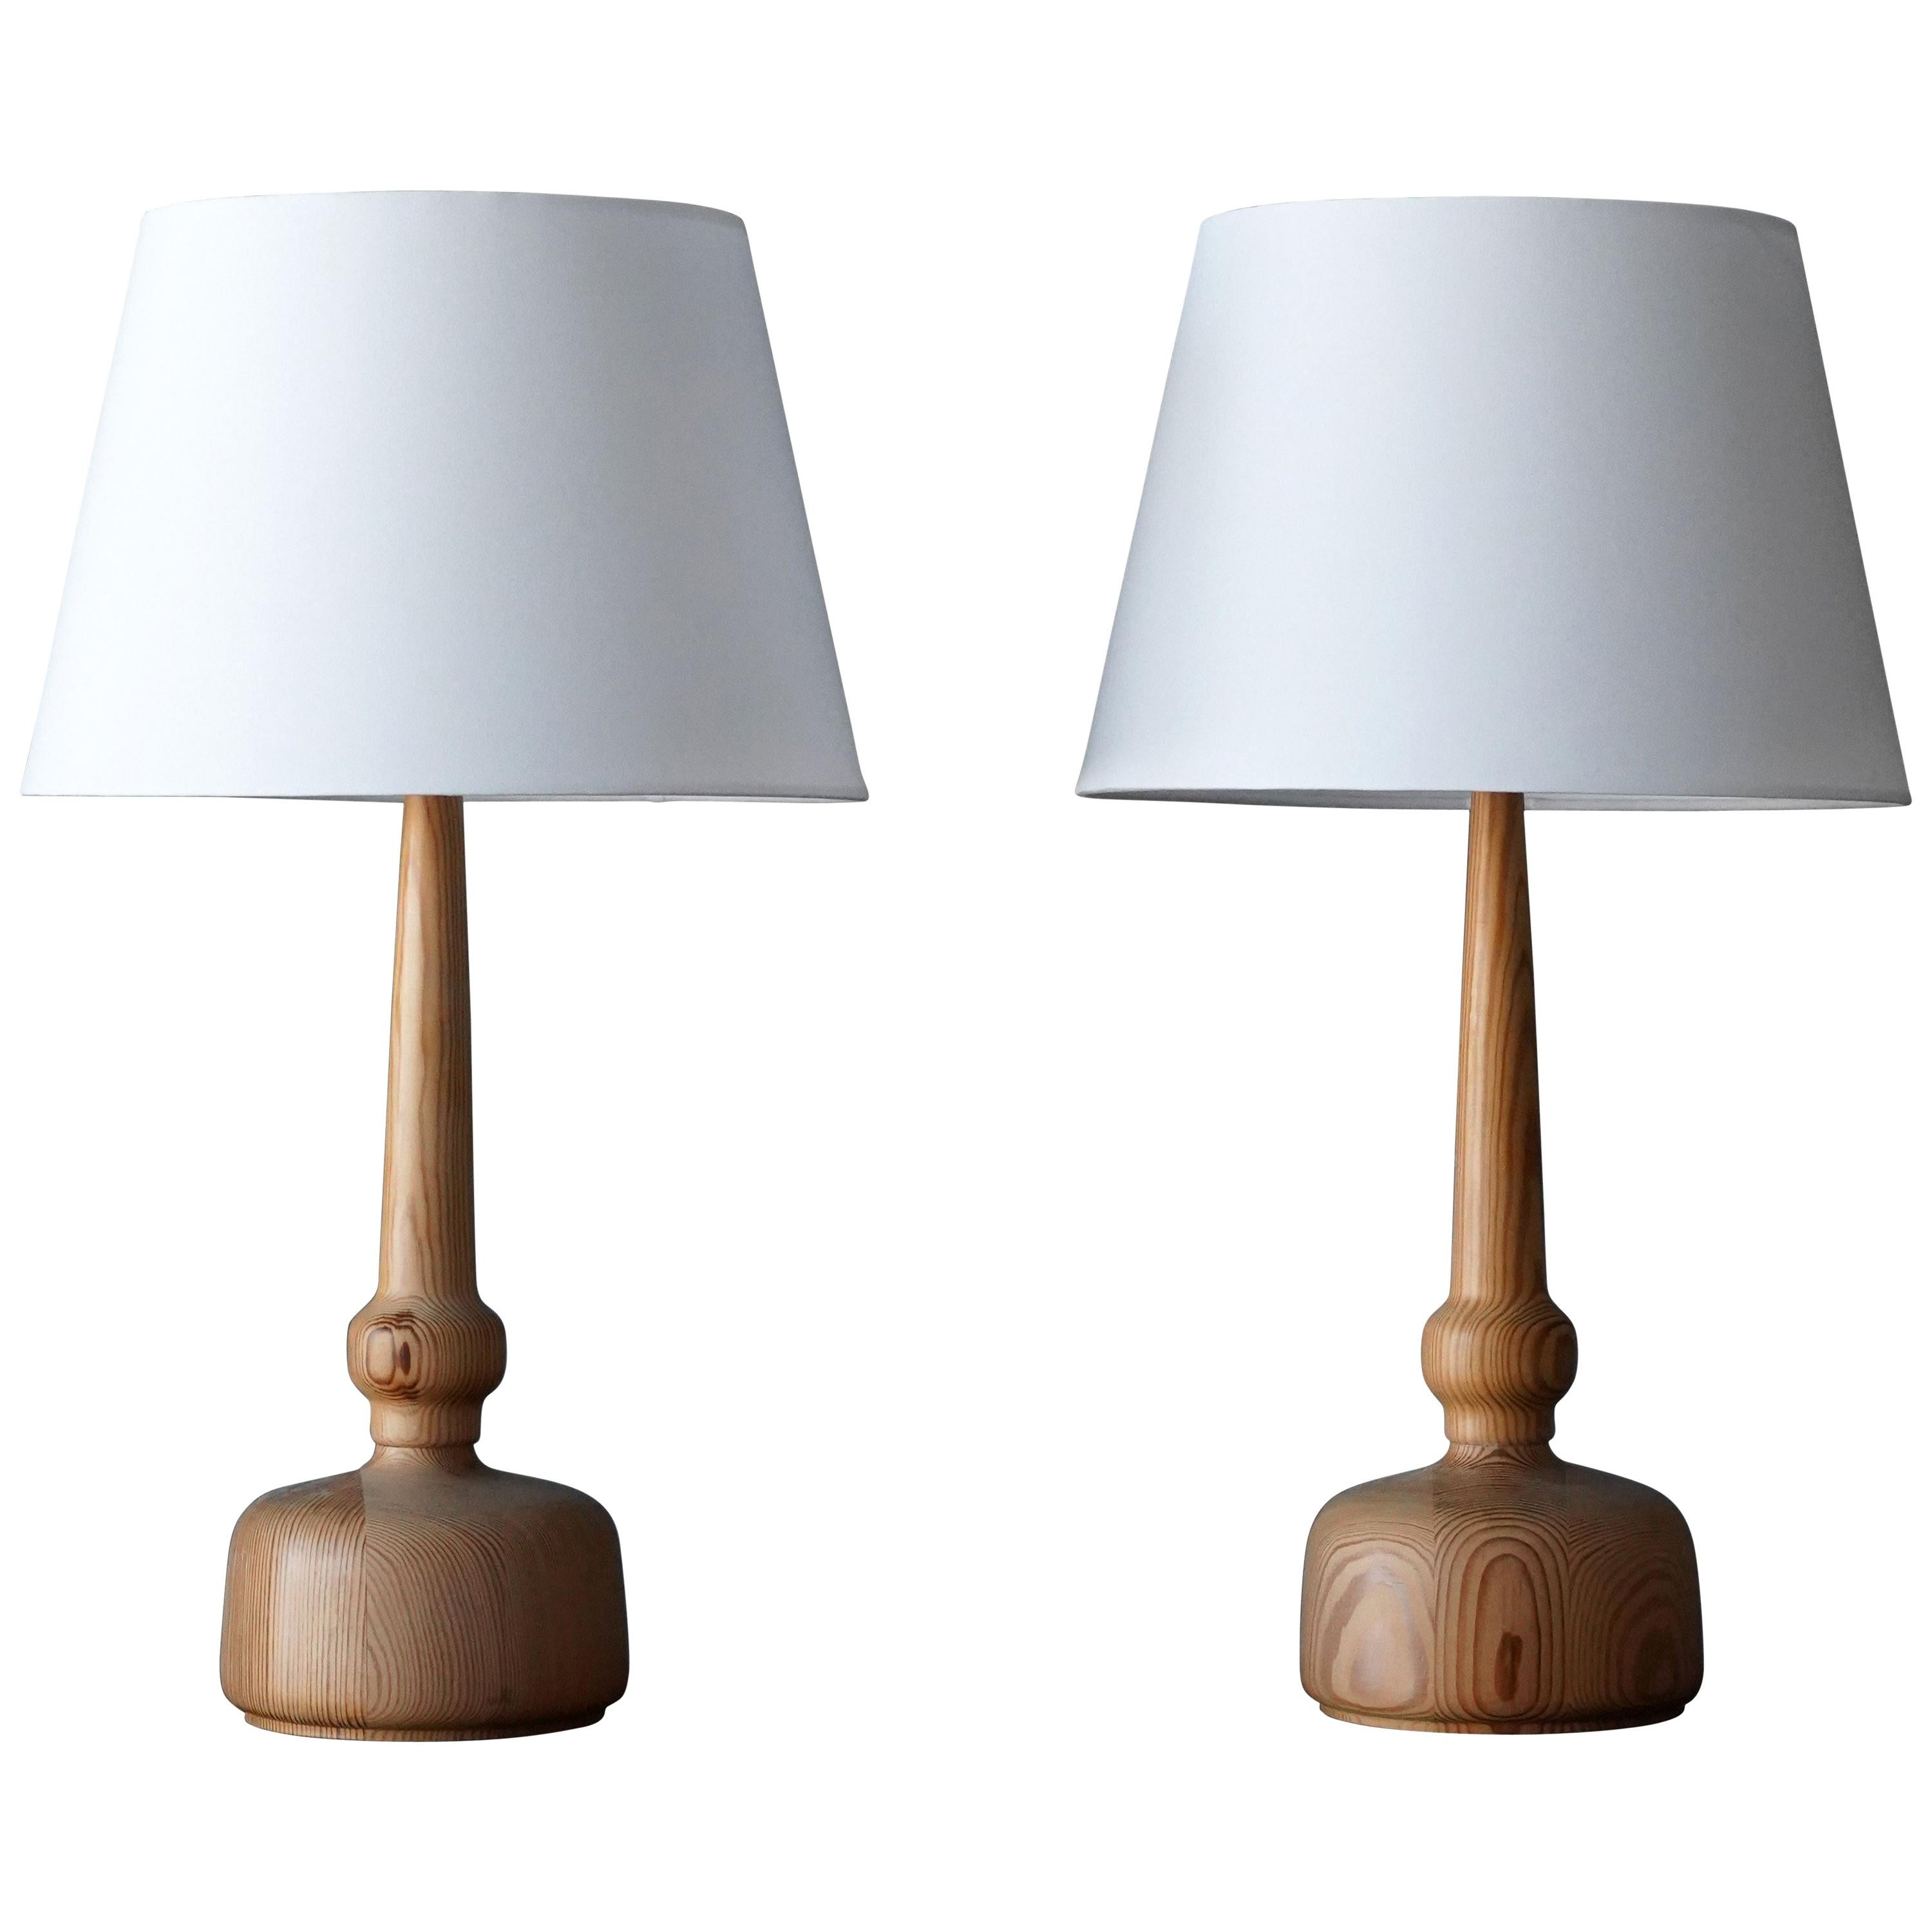 Hans-Agne Jakobsson, Table Lamps, Solid Turned Pine, Sweden, 1970s